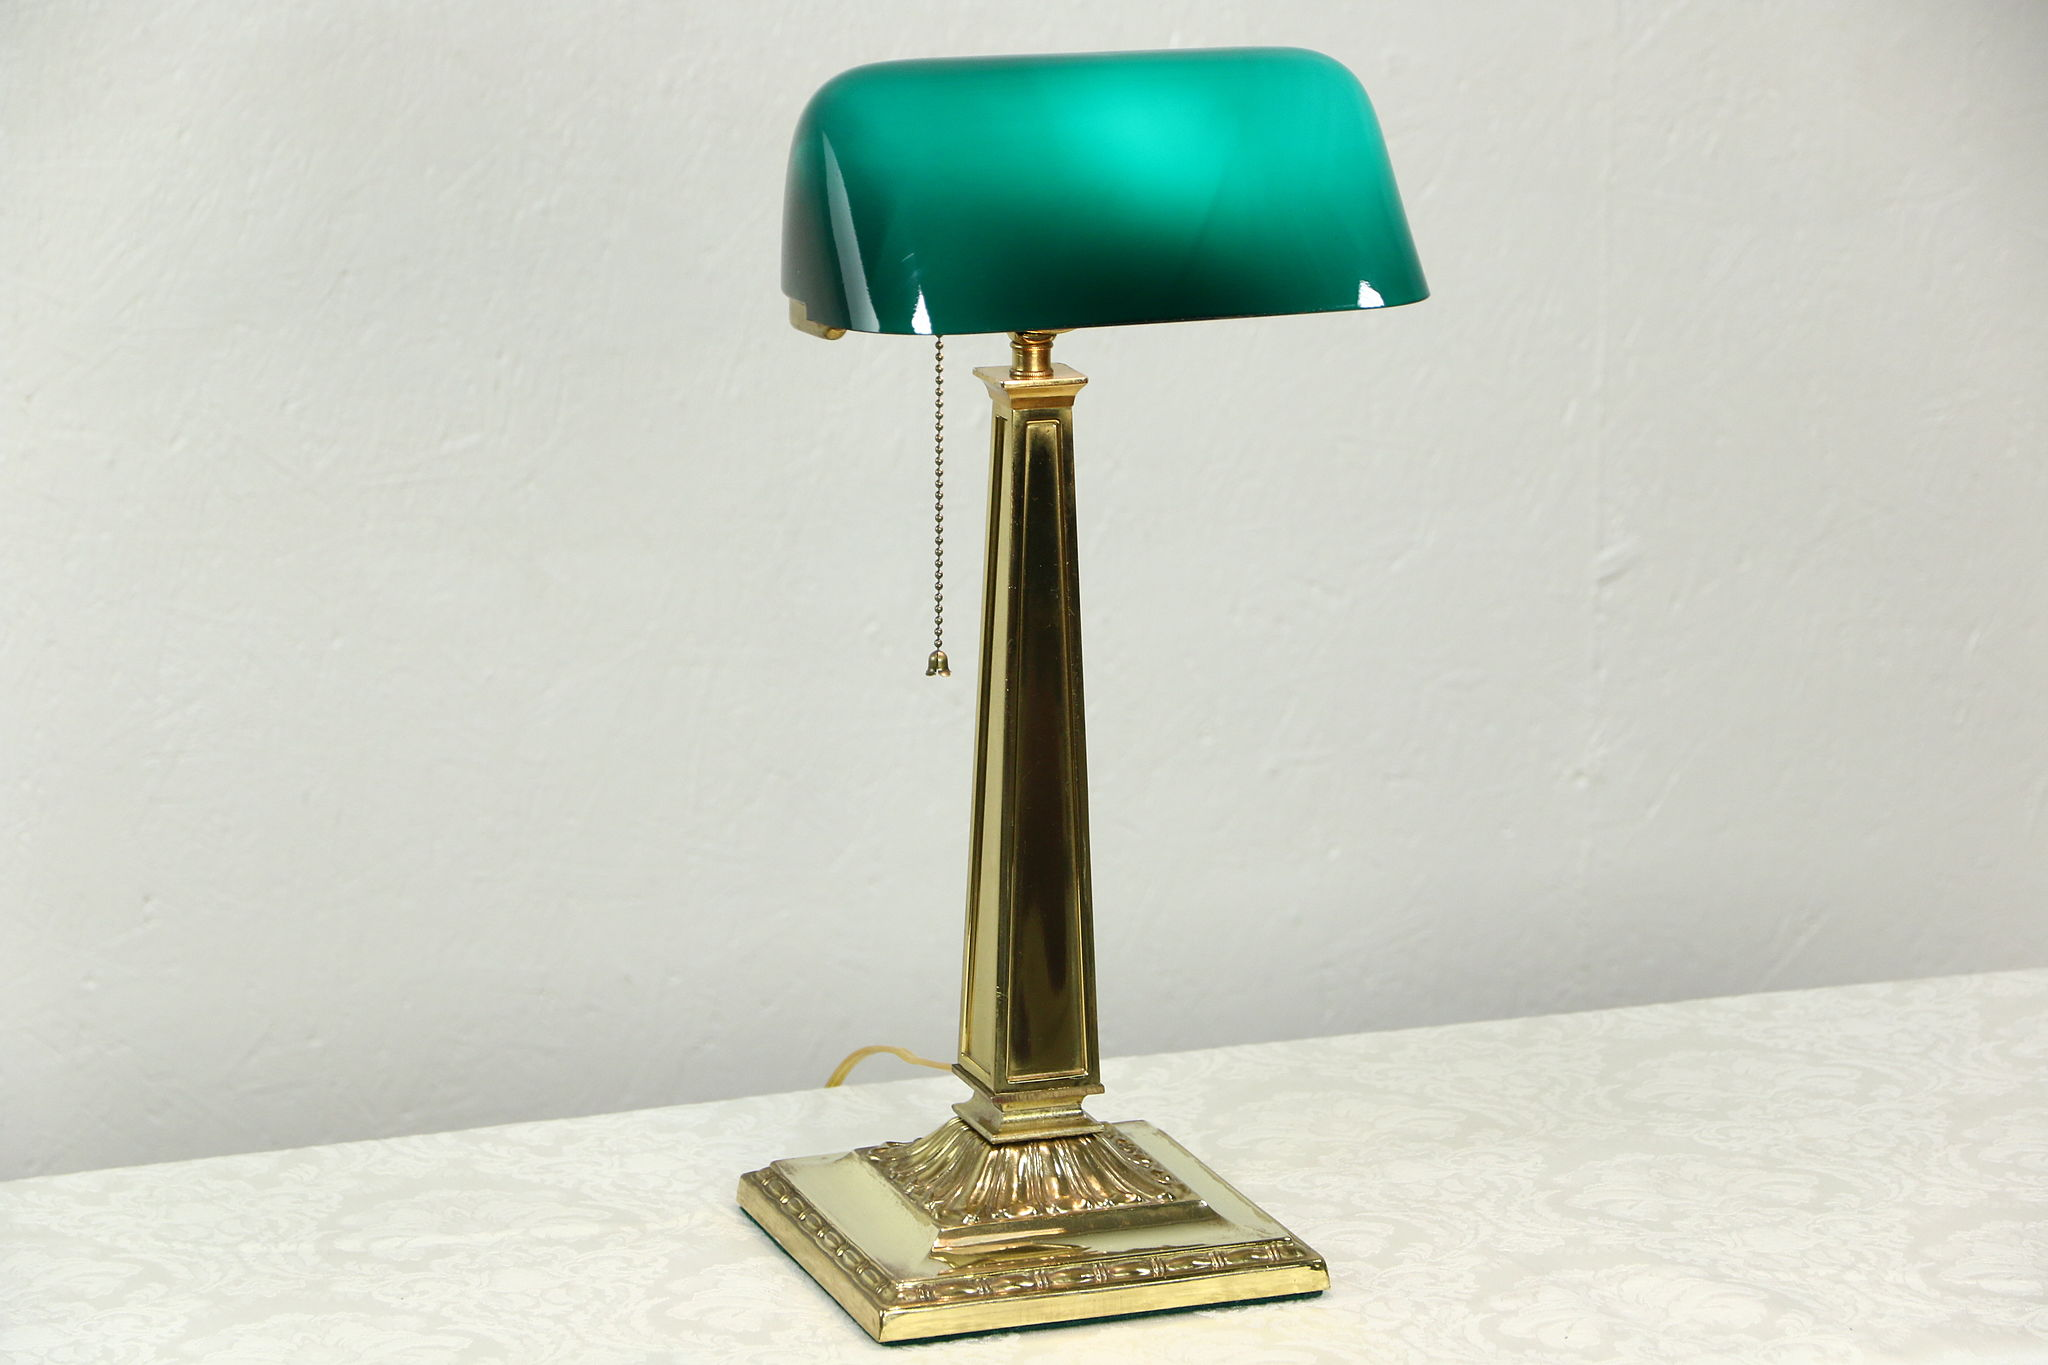 Sold Emeralite Signed Antique Desk Lamp Emerald Cased Glass Shade